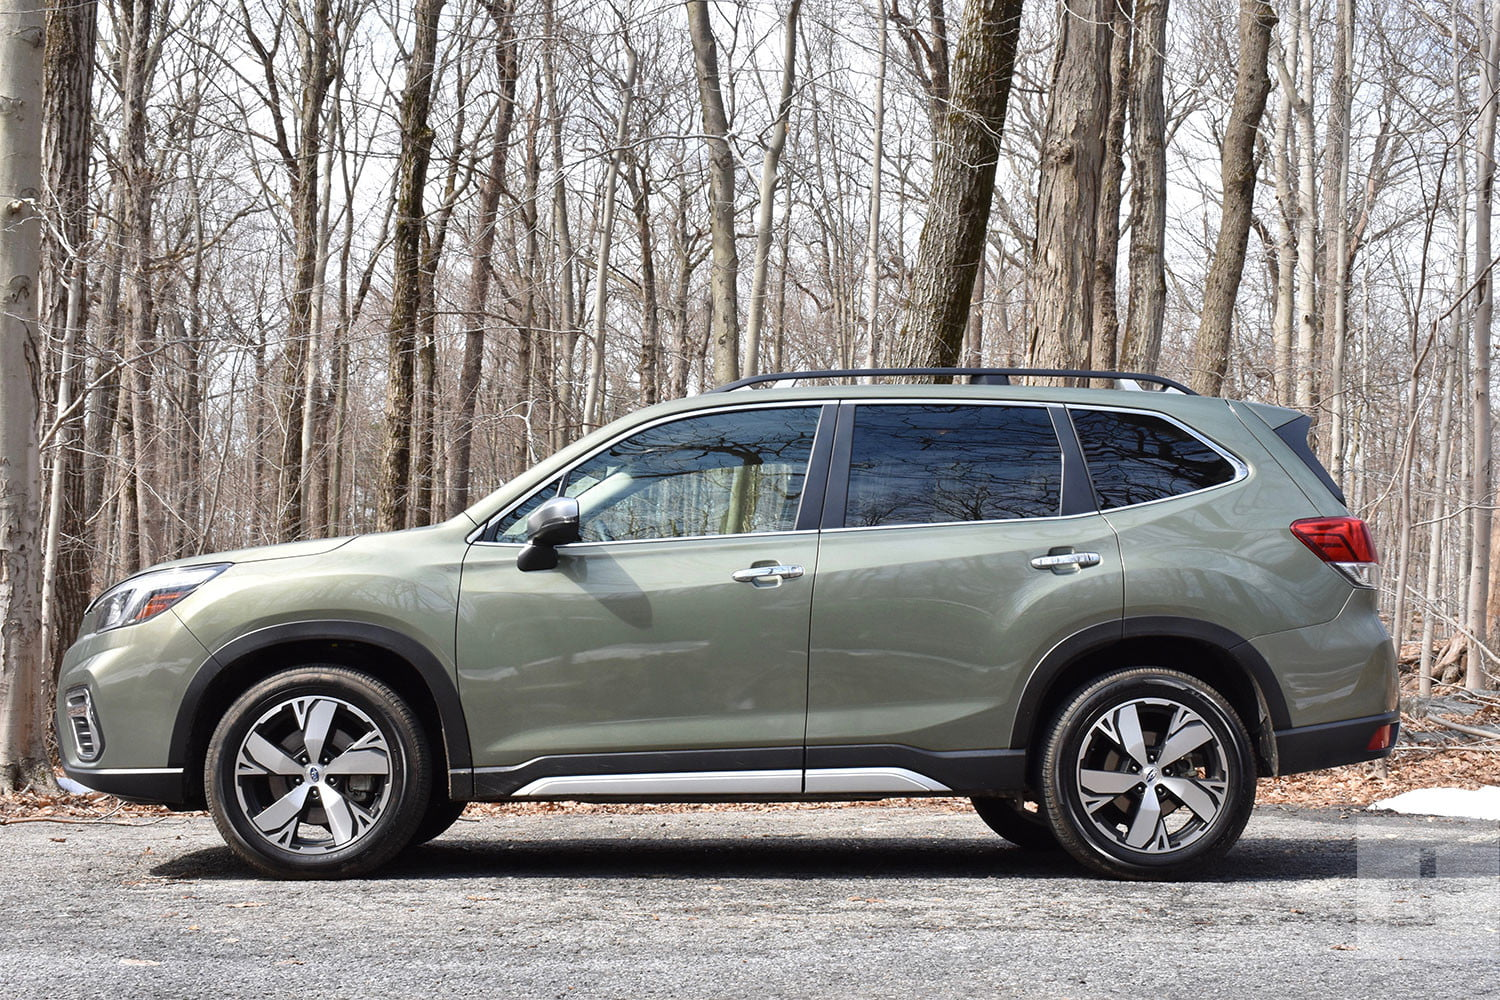 2019 Subaru Forester Touring Review: Spacious Above All Else